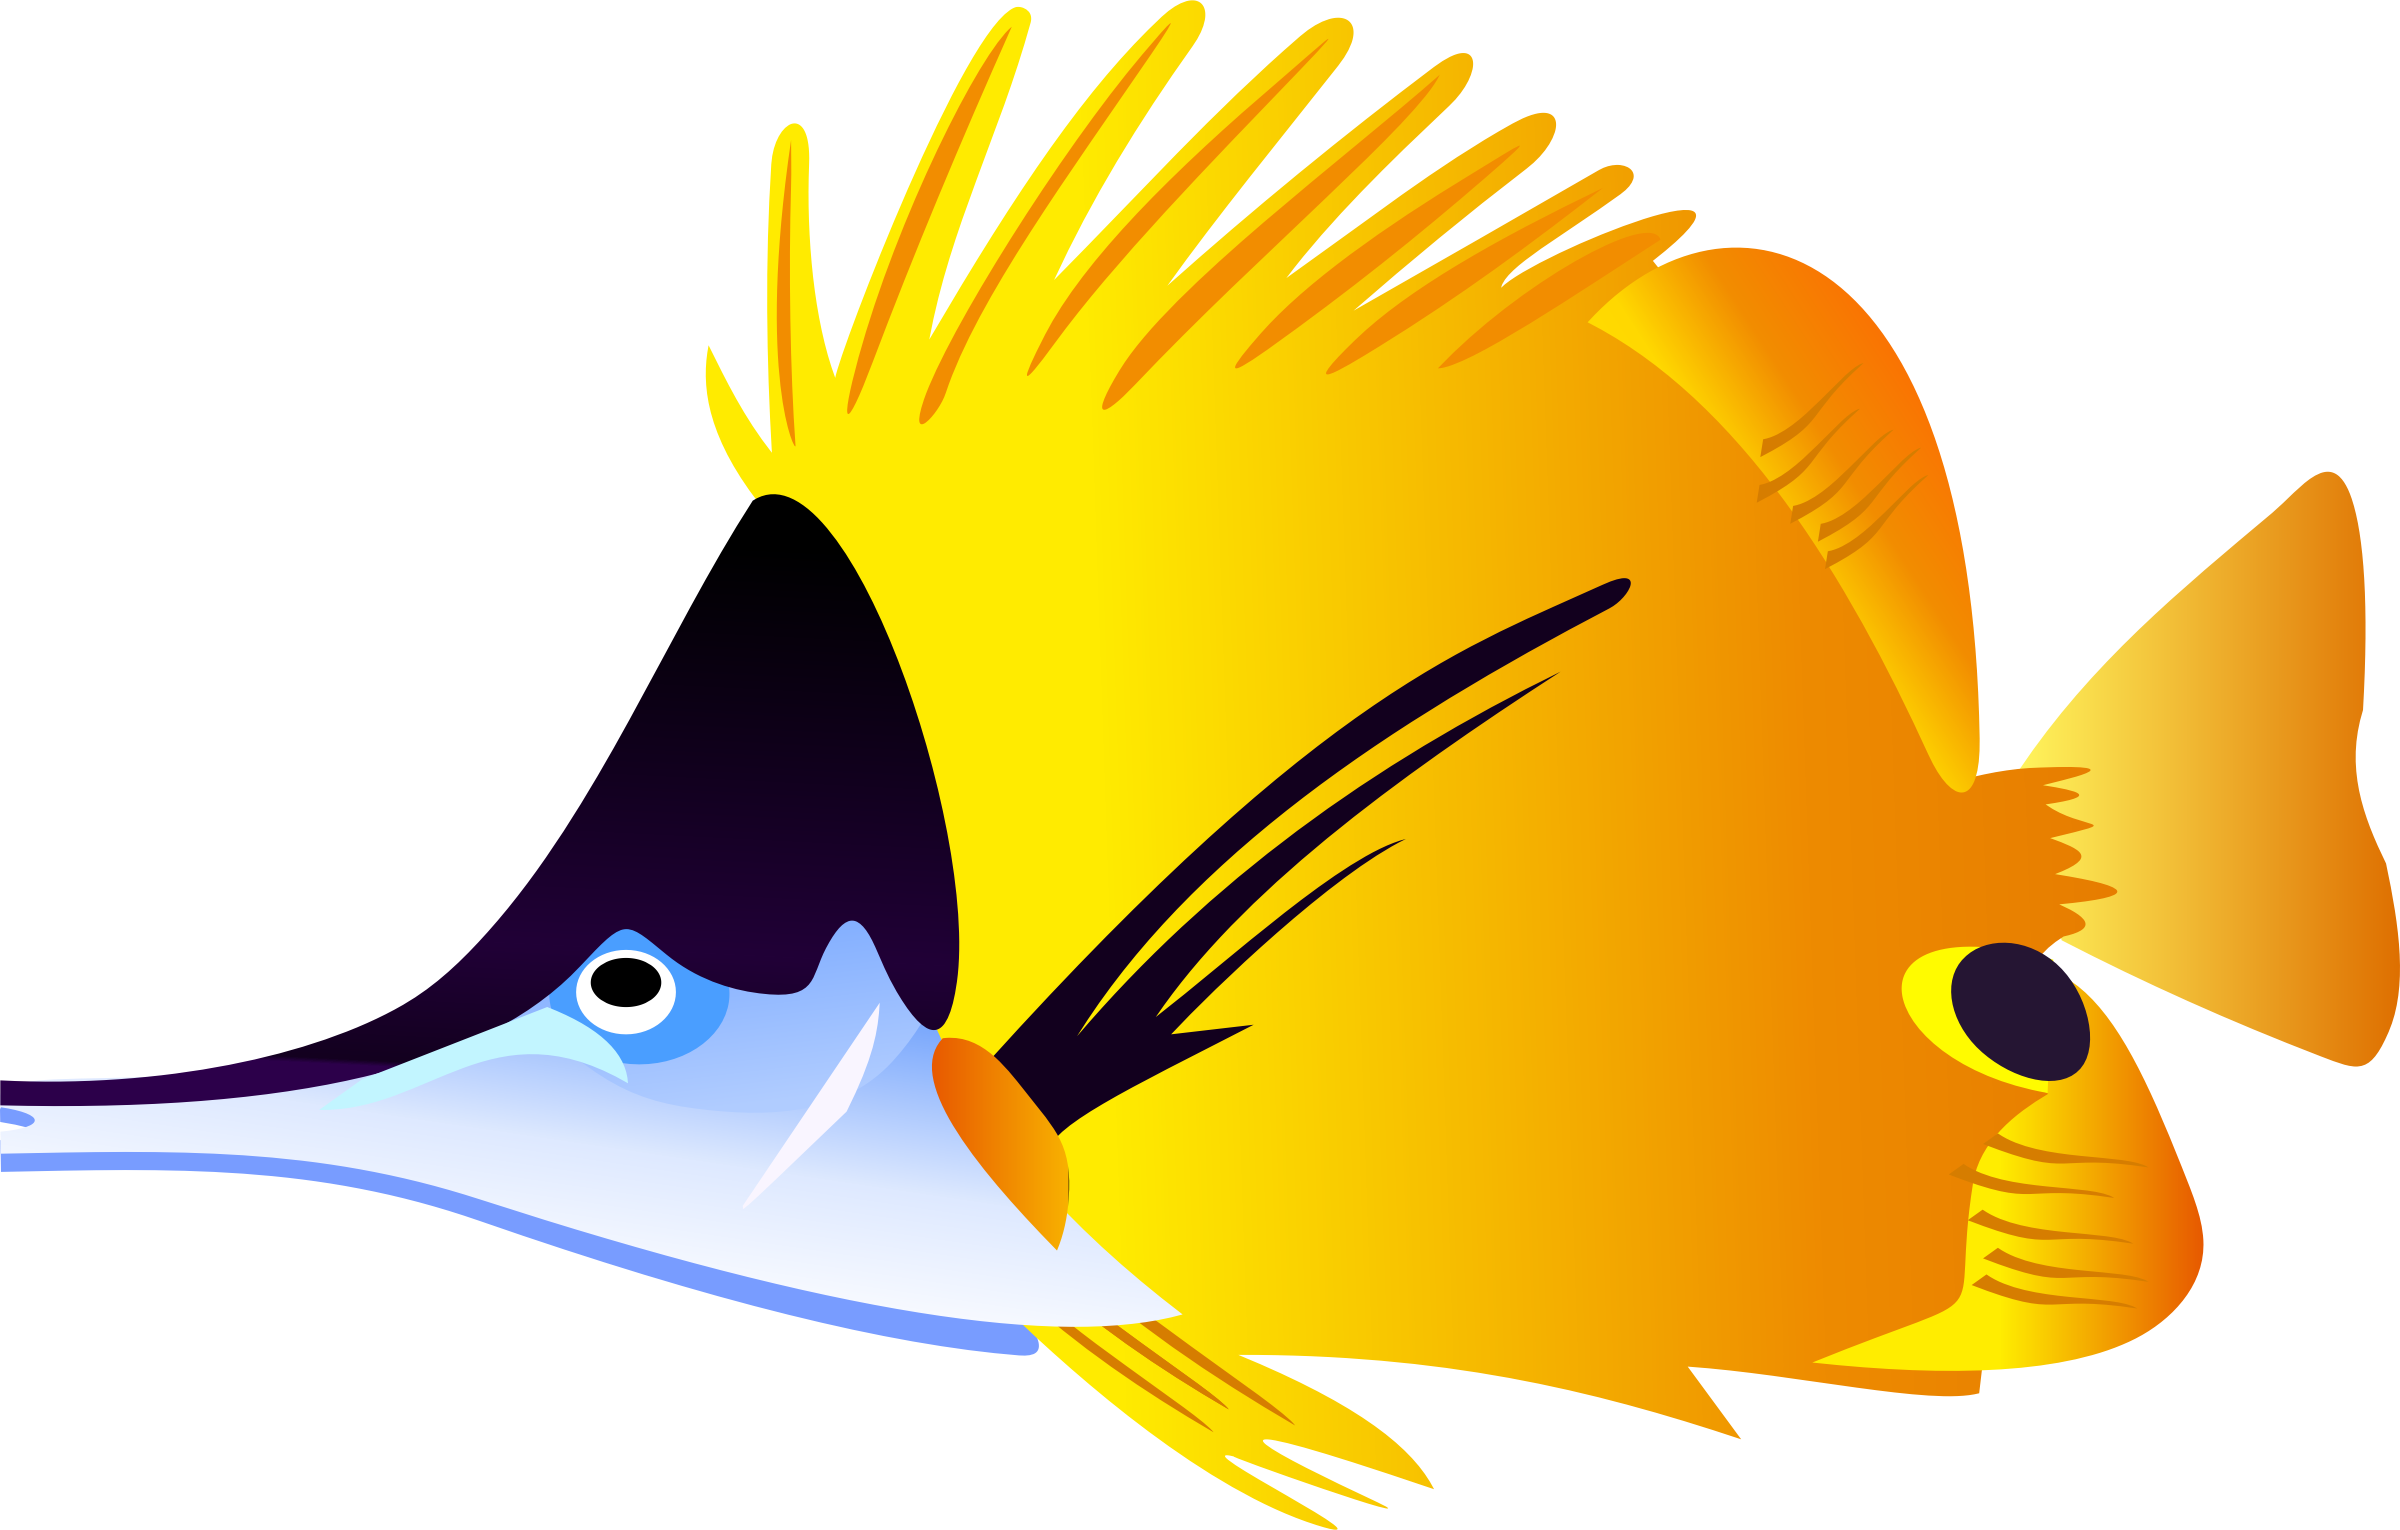 Saltwater at getdrawings com. Fish pictures clipart